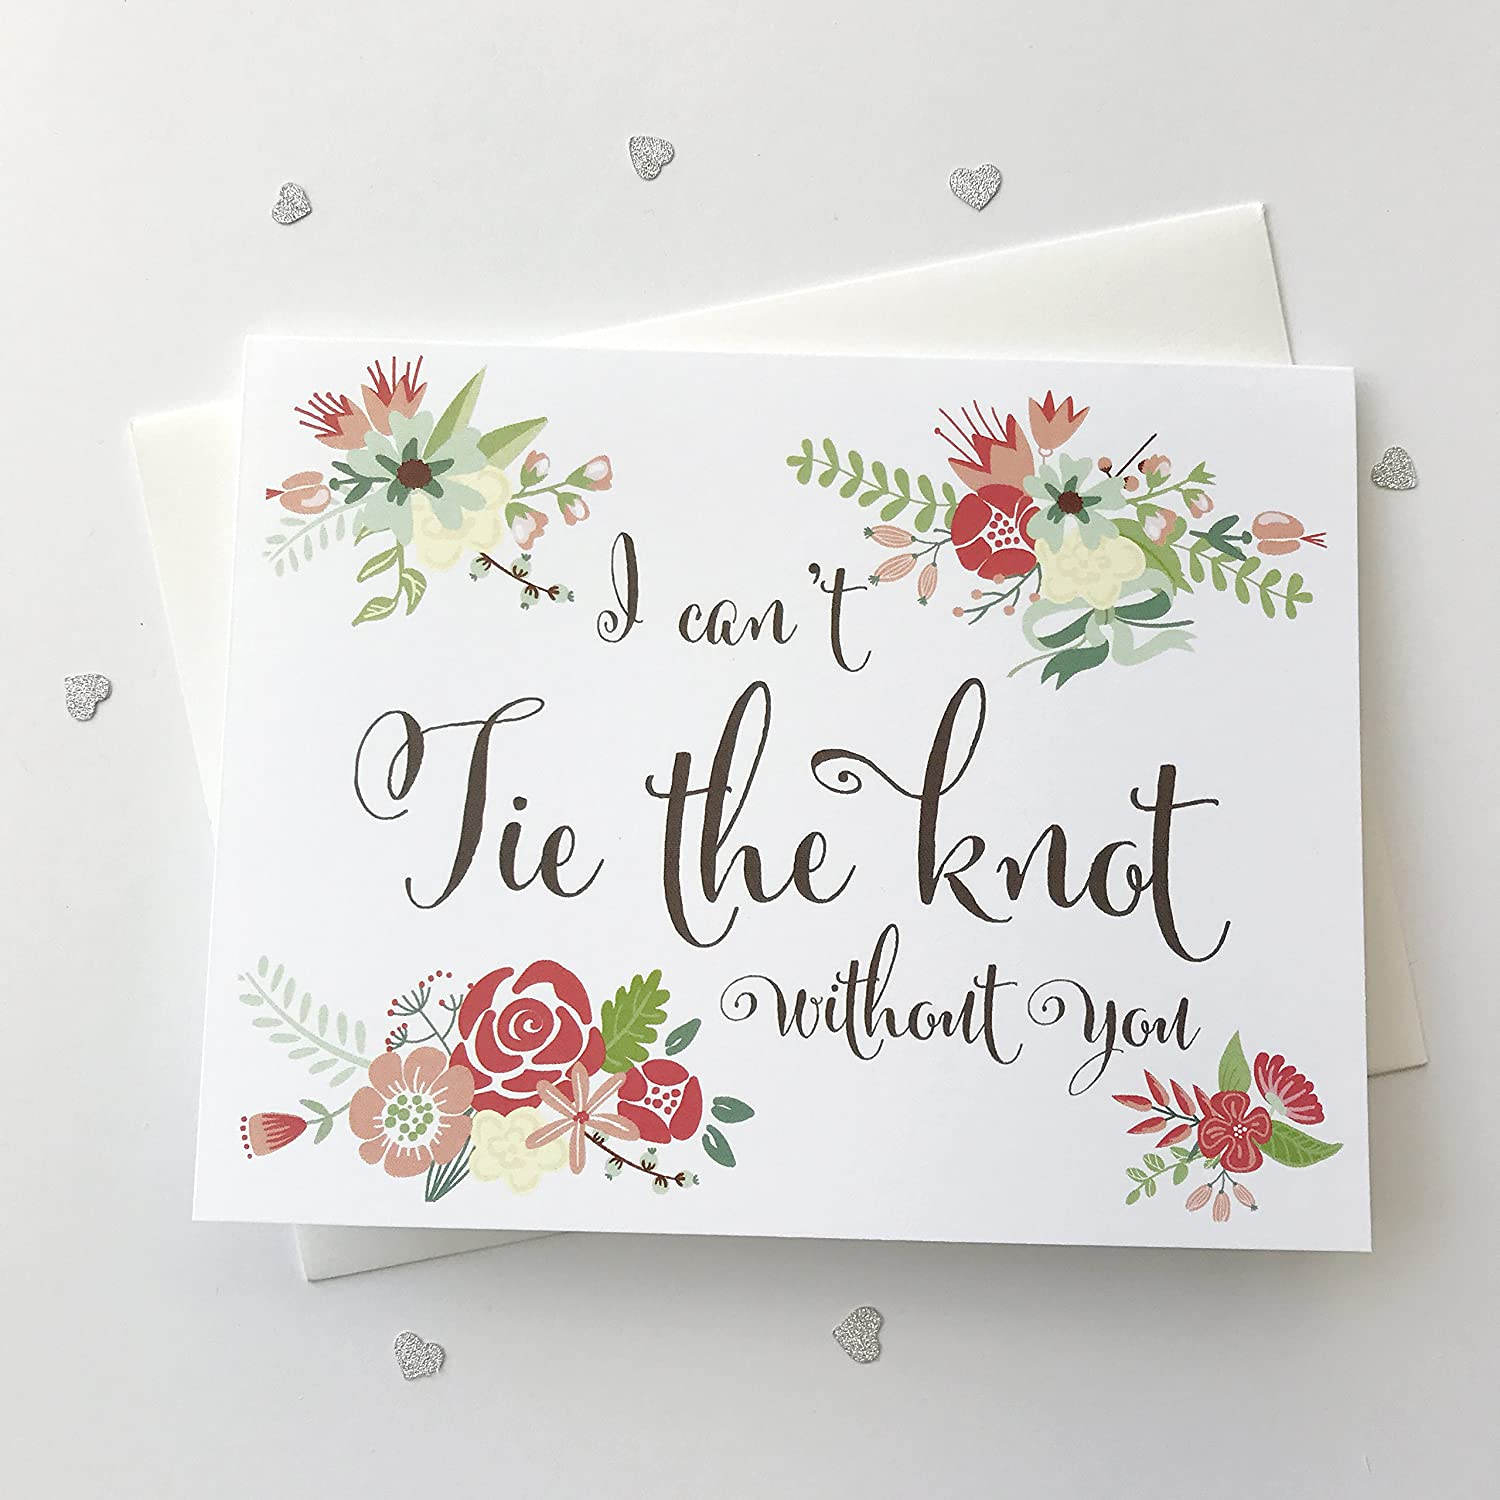 image regarding Printable Knot Tying Cards titled 8 ct I Cant Tie The Knot Devoid of On your own Wedding day Working day Playing cards Thank Your self Playing cards, Will On your own Be My Bridesmaid Playing cards, Floral Bridesmaid Playing cards (WB042-CN)